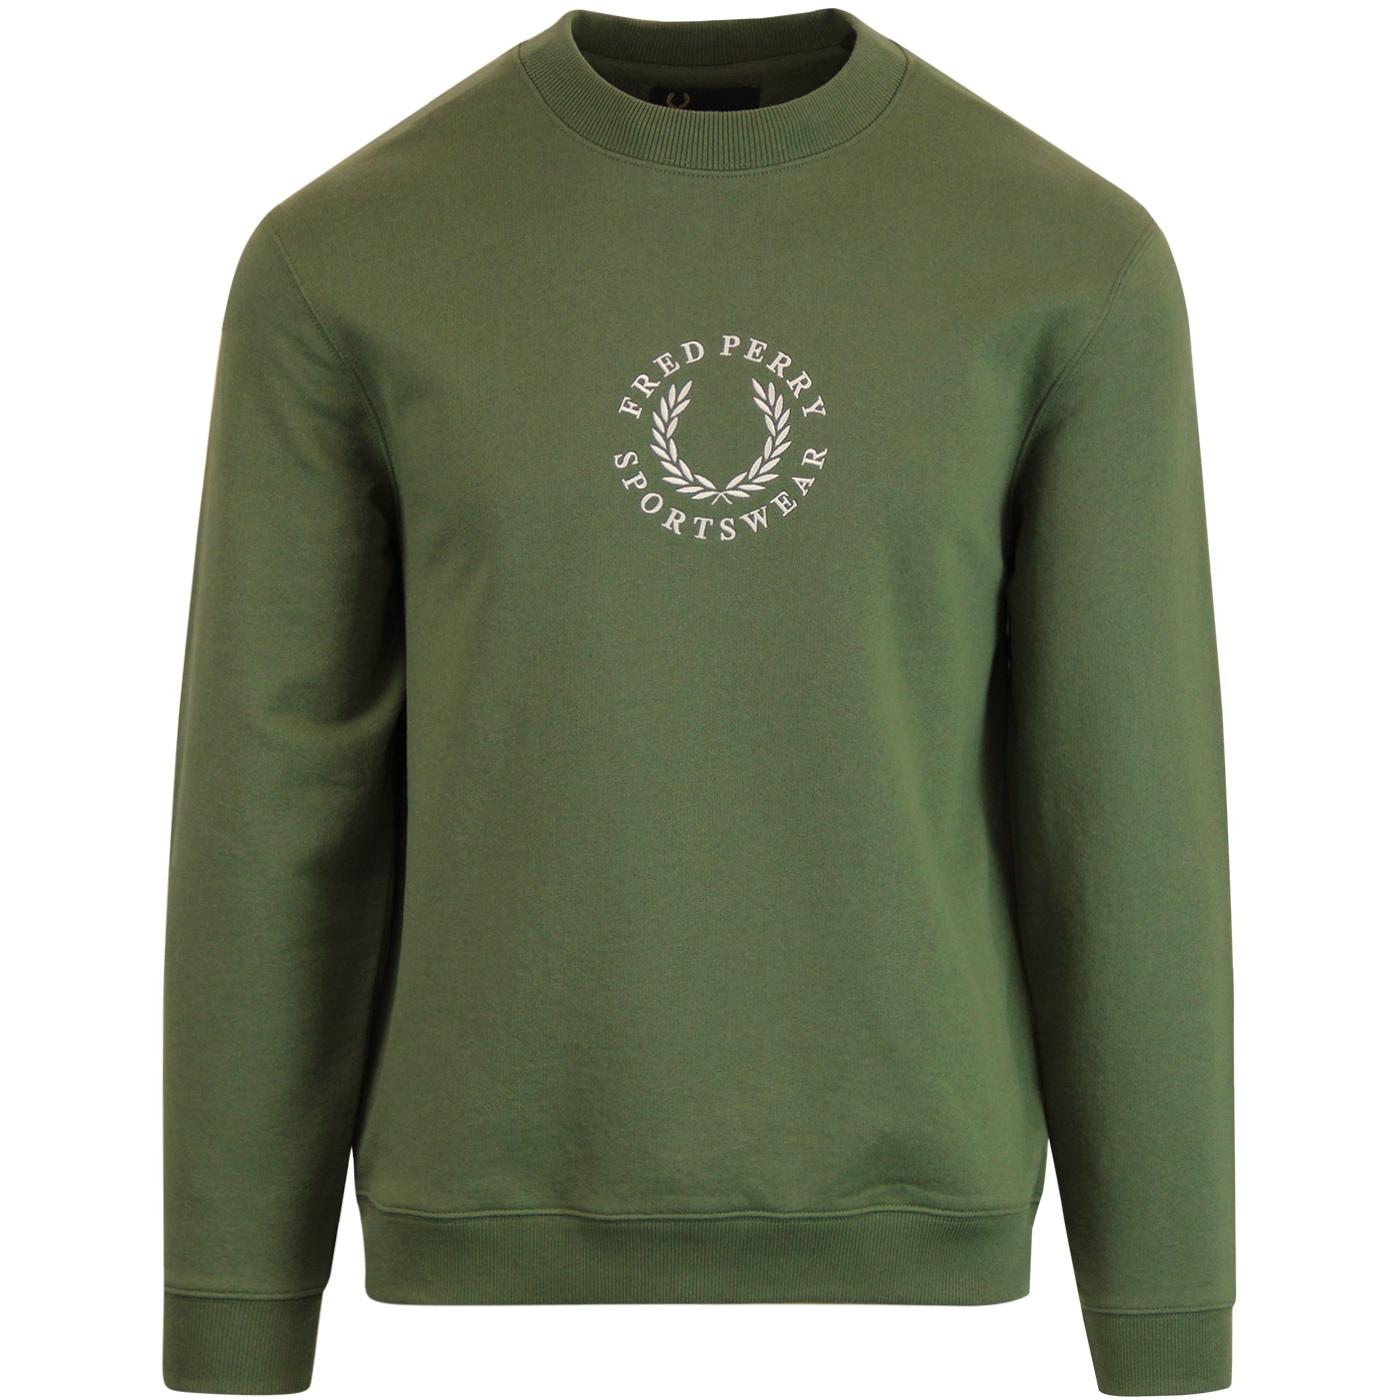 FRED PERRY Mens Retro Crew Neck Branded Sweatshirt